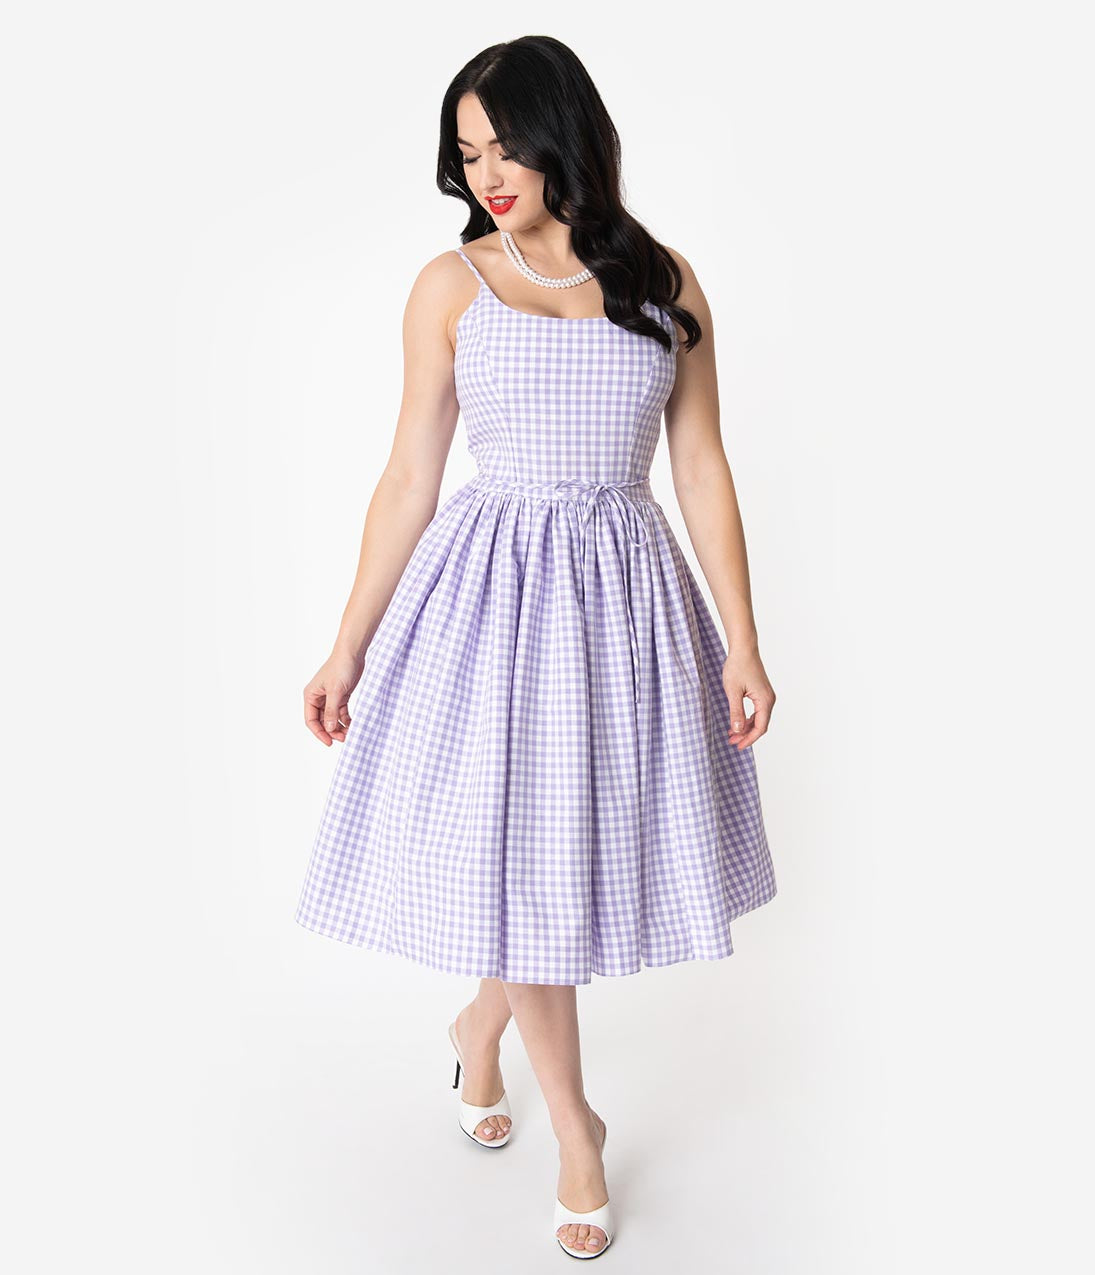 Fifties Dresses : 1950s Style Swing to Wiggle Dresses Bernie Dexter 1950S Lavender  White Gingham Kaelyn Swing Dress $152.00 AT vintagedancer.com